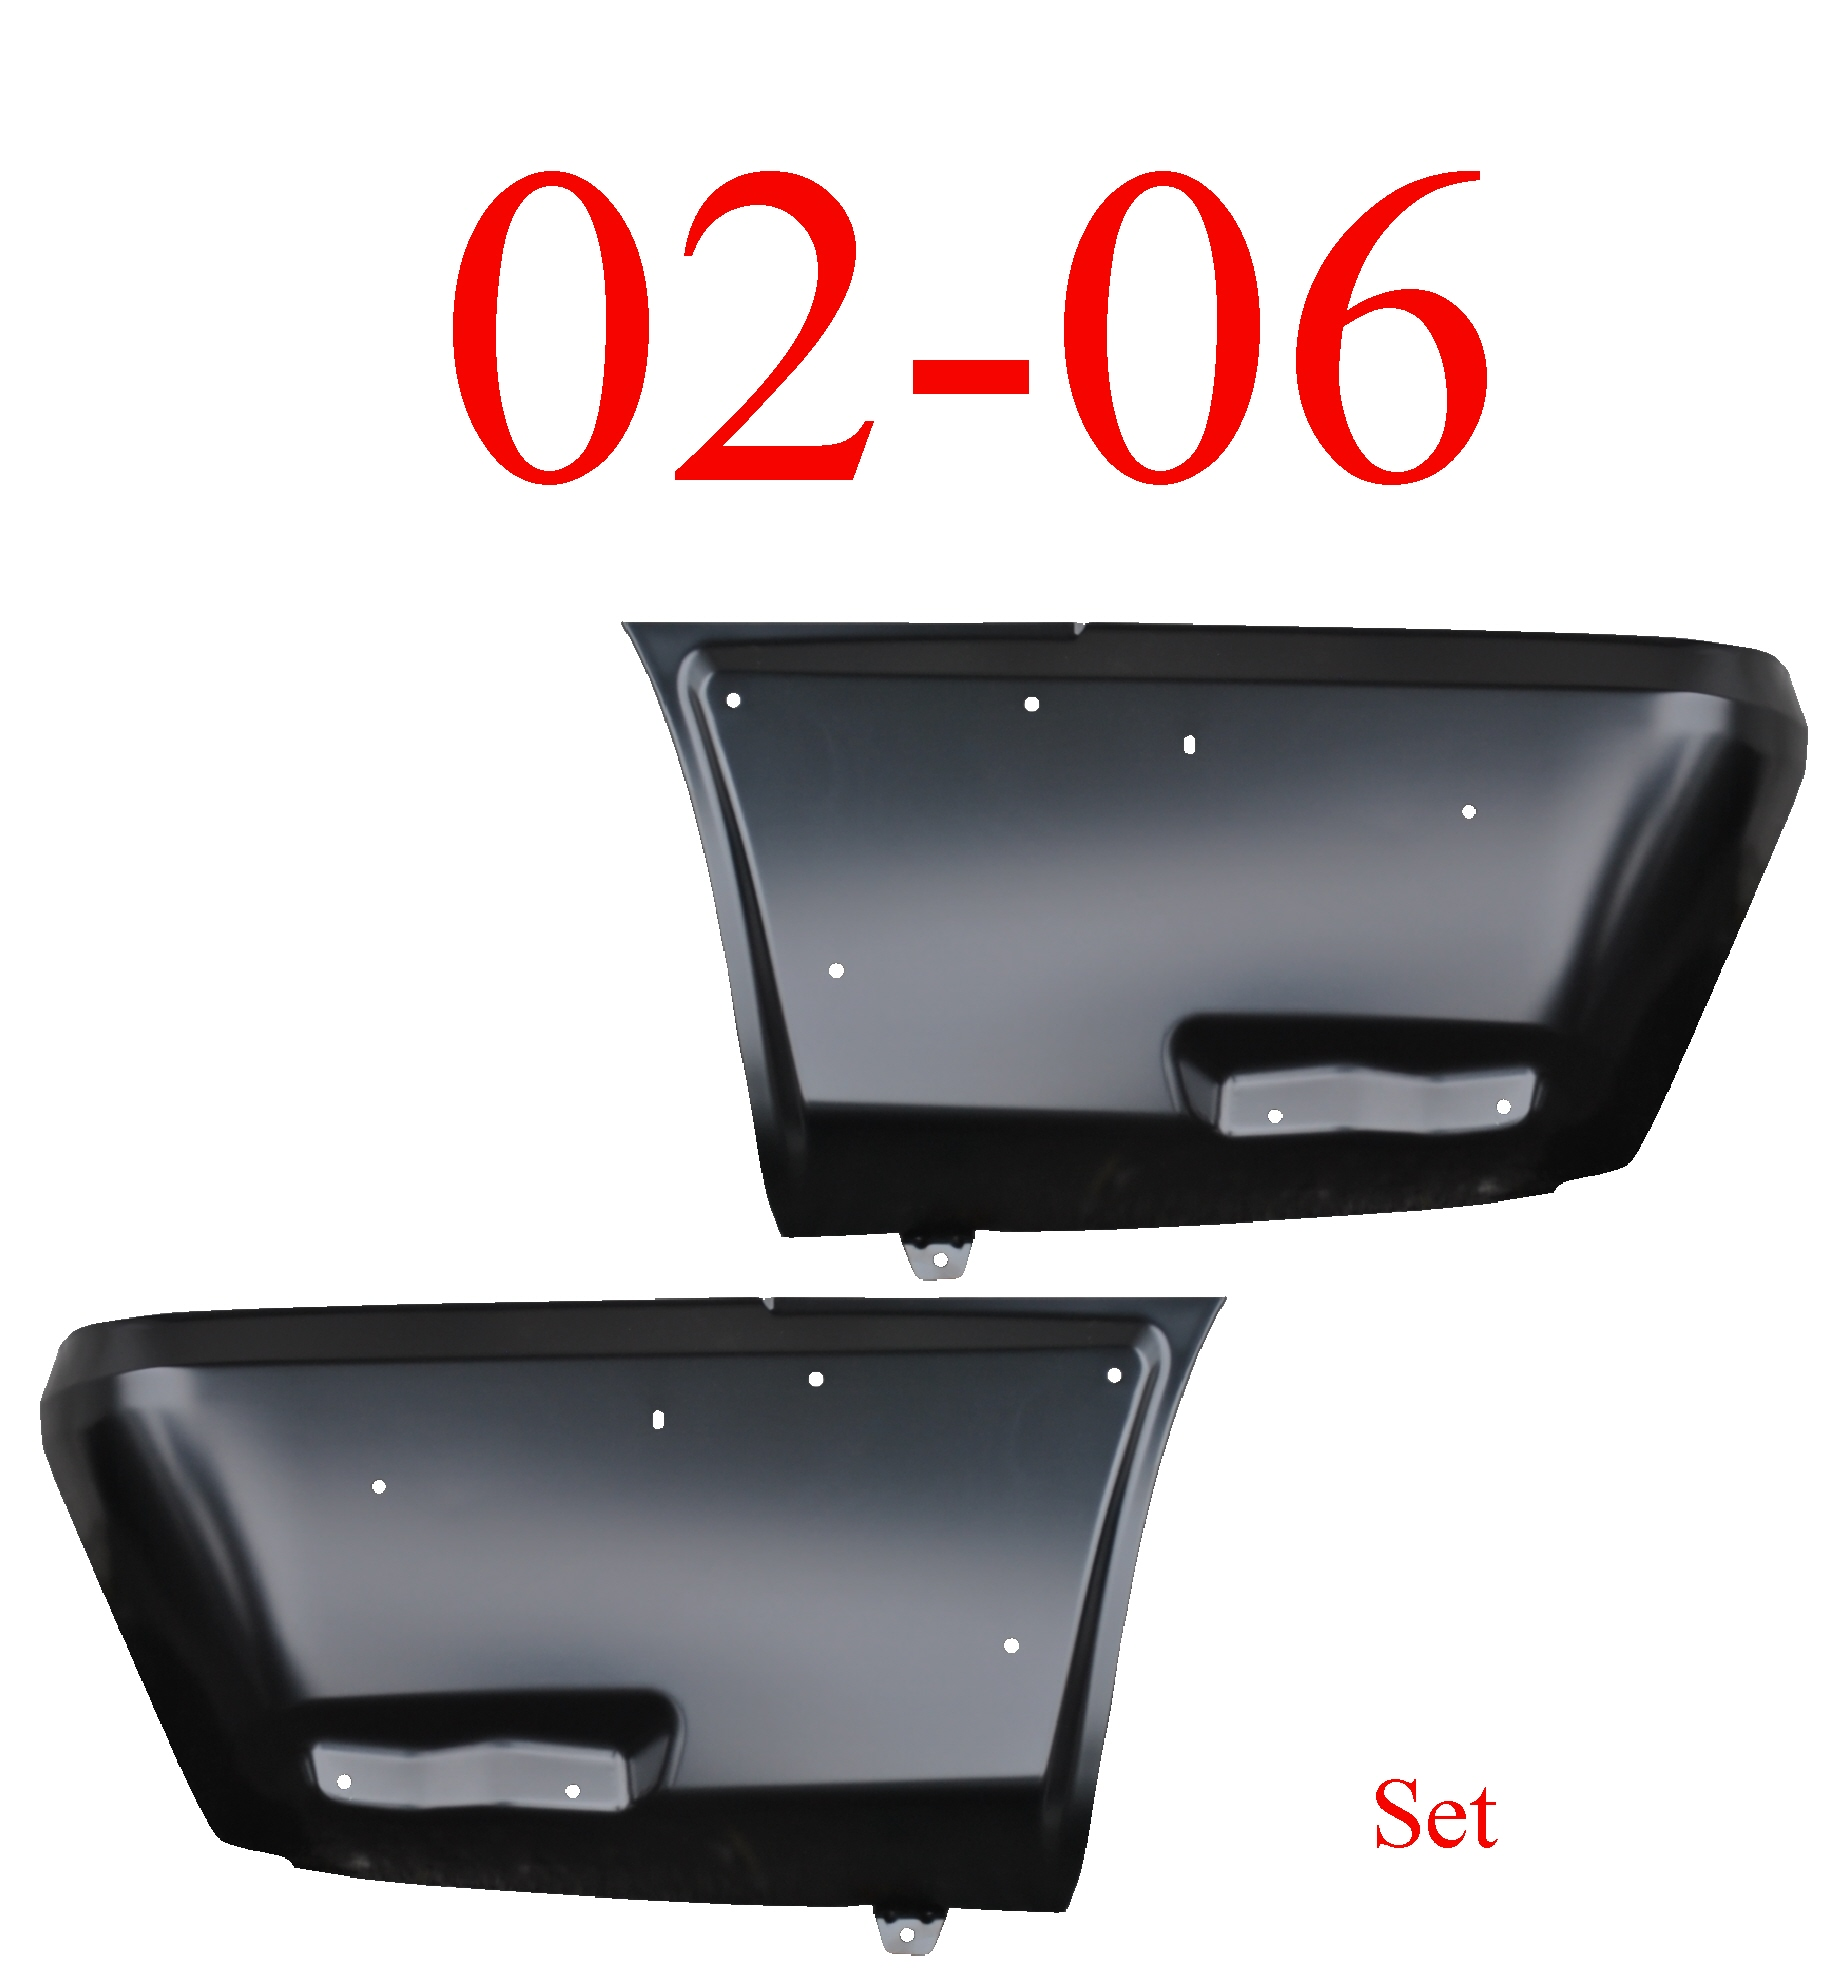 02-06 Chevy Avalanche Rear Lower Quarter Panel Set W/Cladding